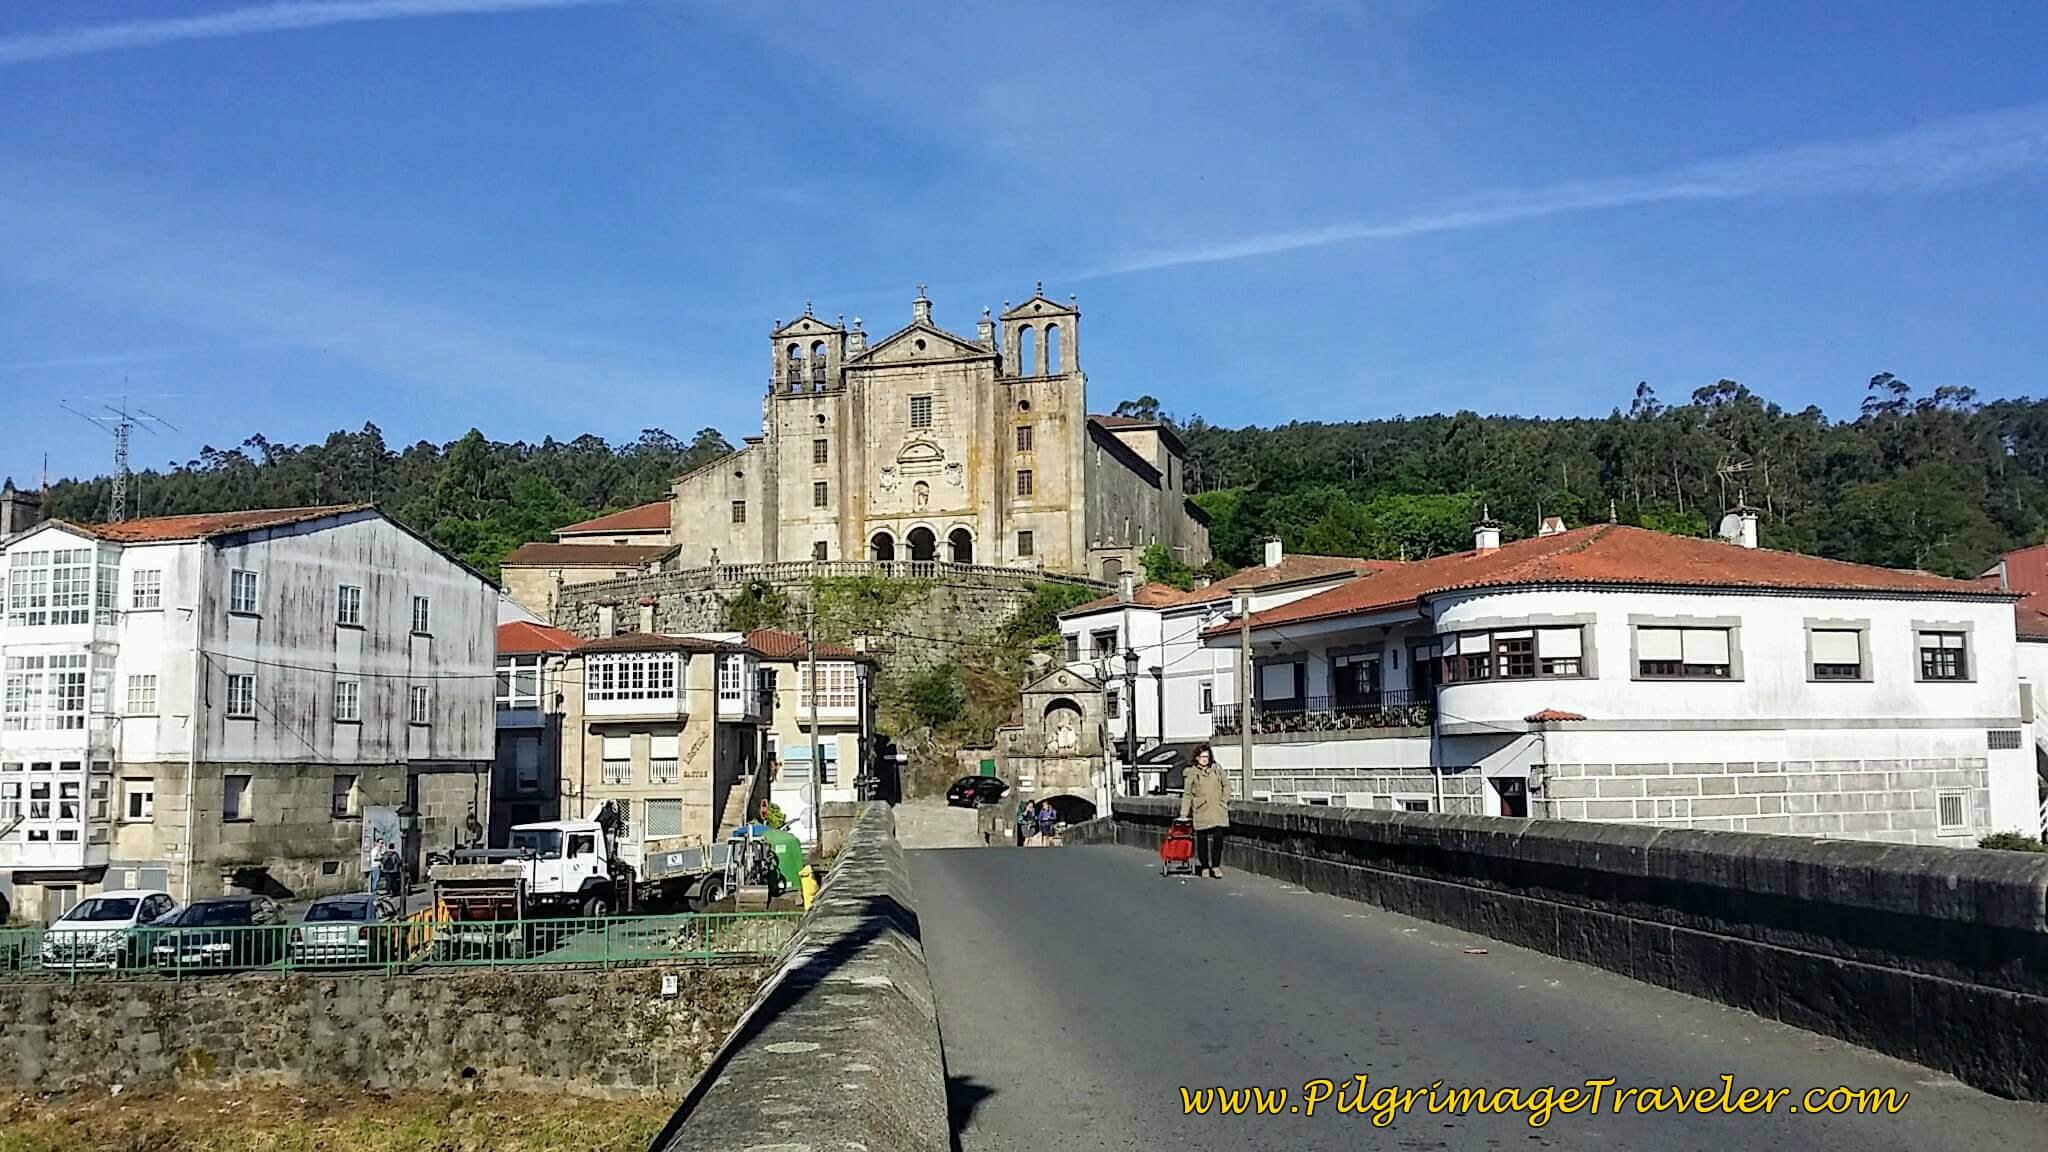 Convento do Carme and Bridge Across the River Sar in Padrón on Day Twenty-Four, Portuguese Way